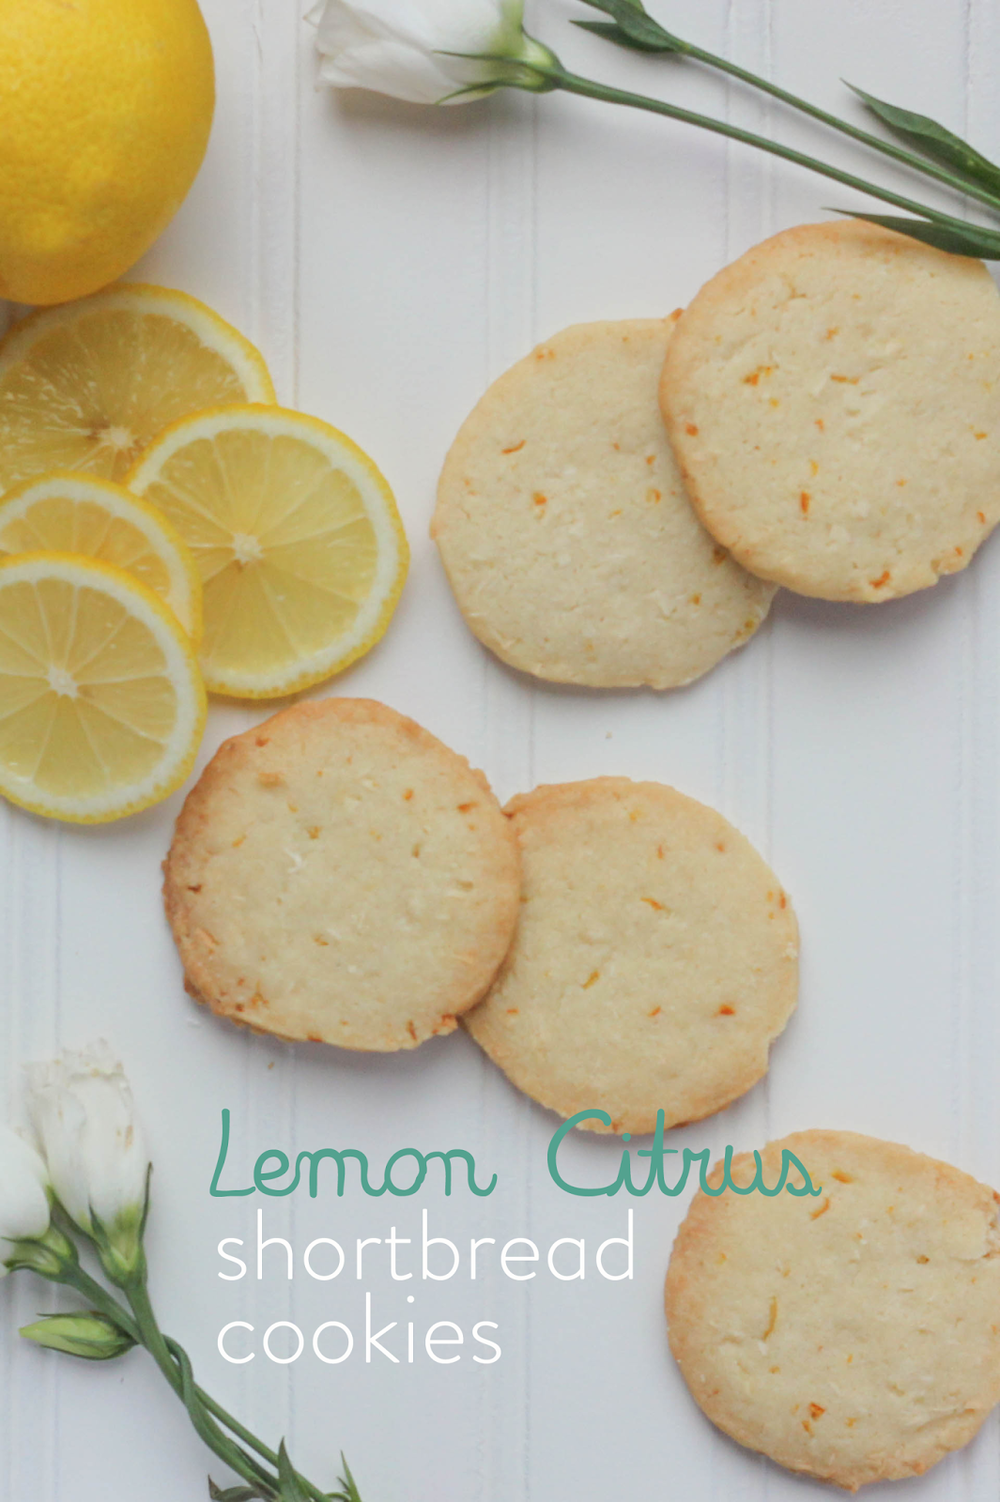 Lemon Citrus Short Bread Cookies -- from www.littlecityadventures.com -- the most unique recipe for lemon-y shortbread cookies that you'll find! They're packed with flavor and a fantastic texture #littlecitykitchen #recipe